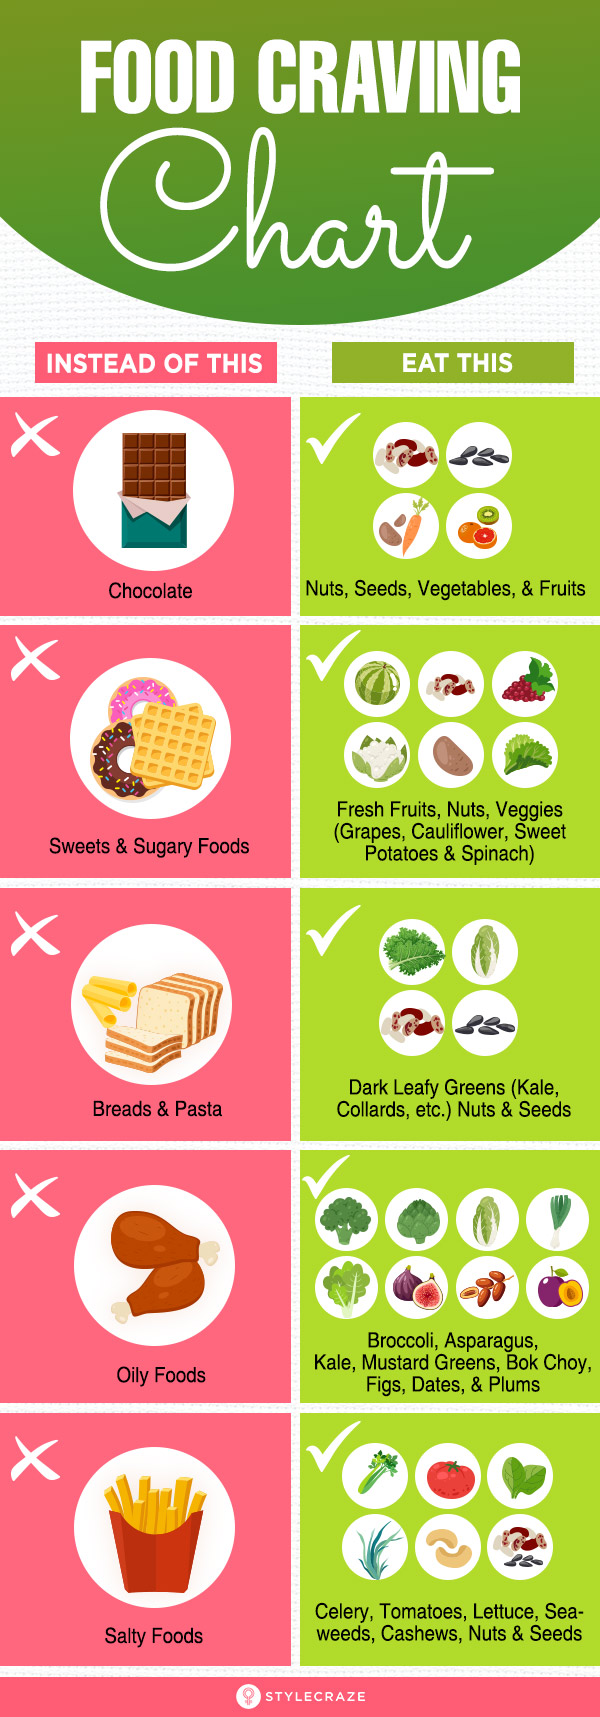 Food Craving Chart – Replacing Cravings